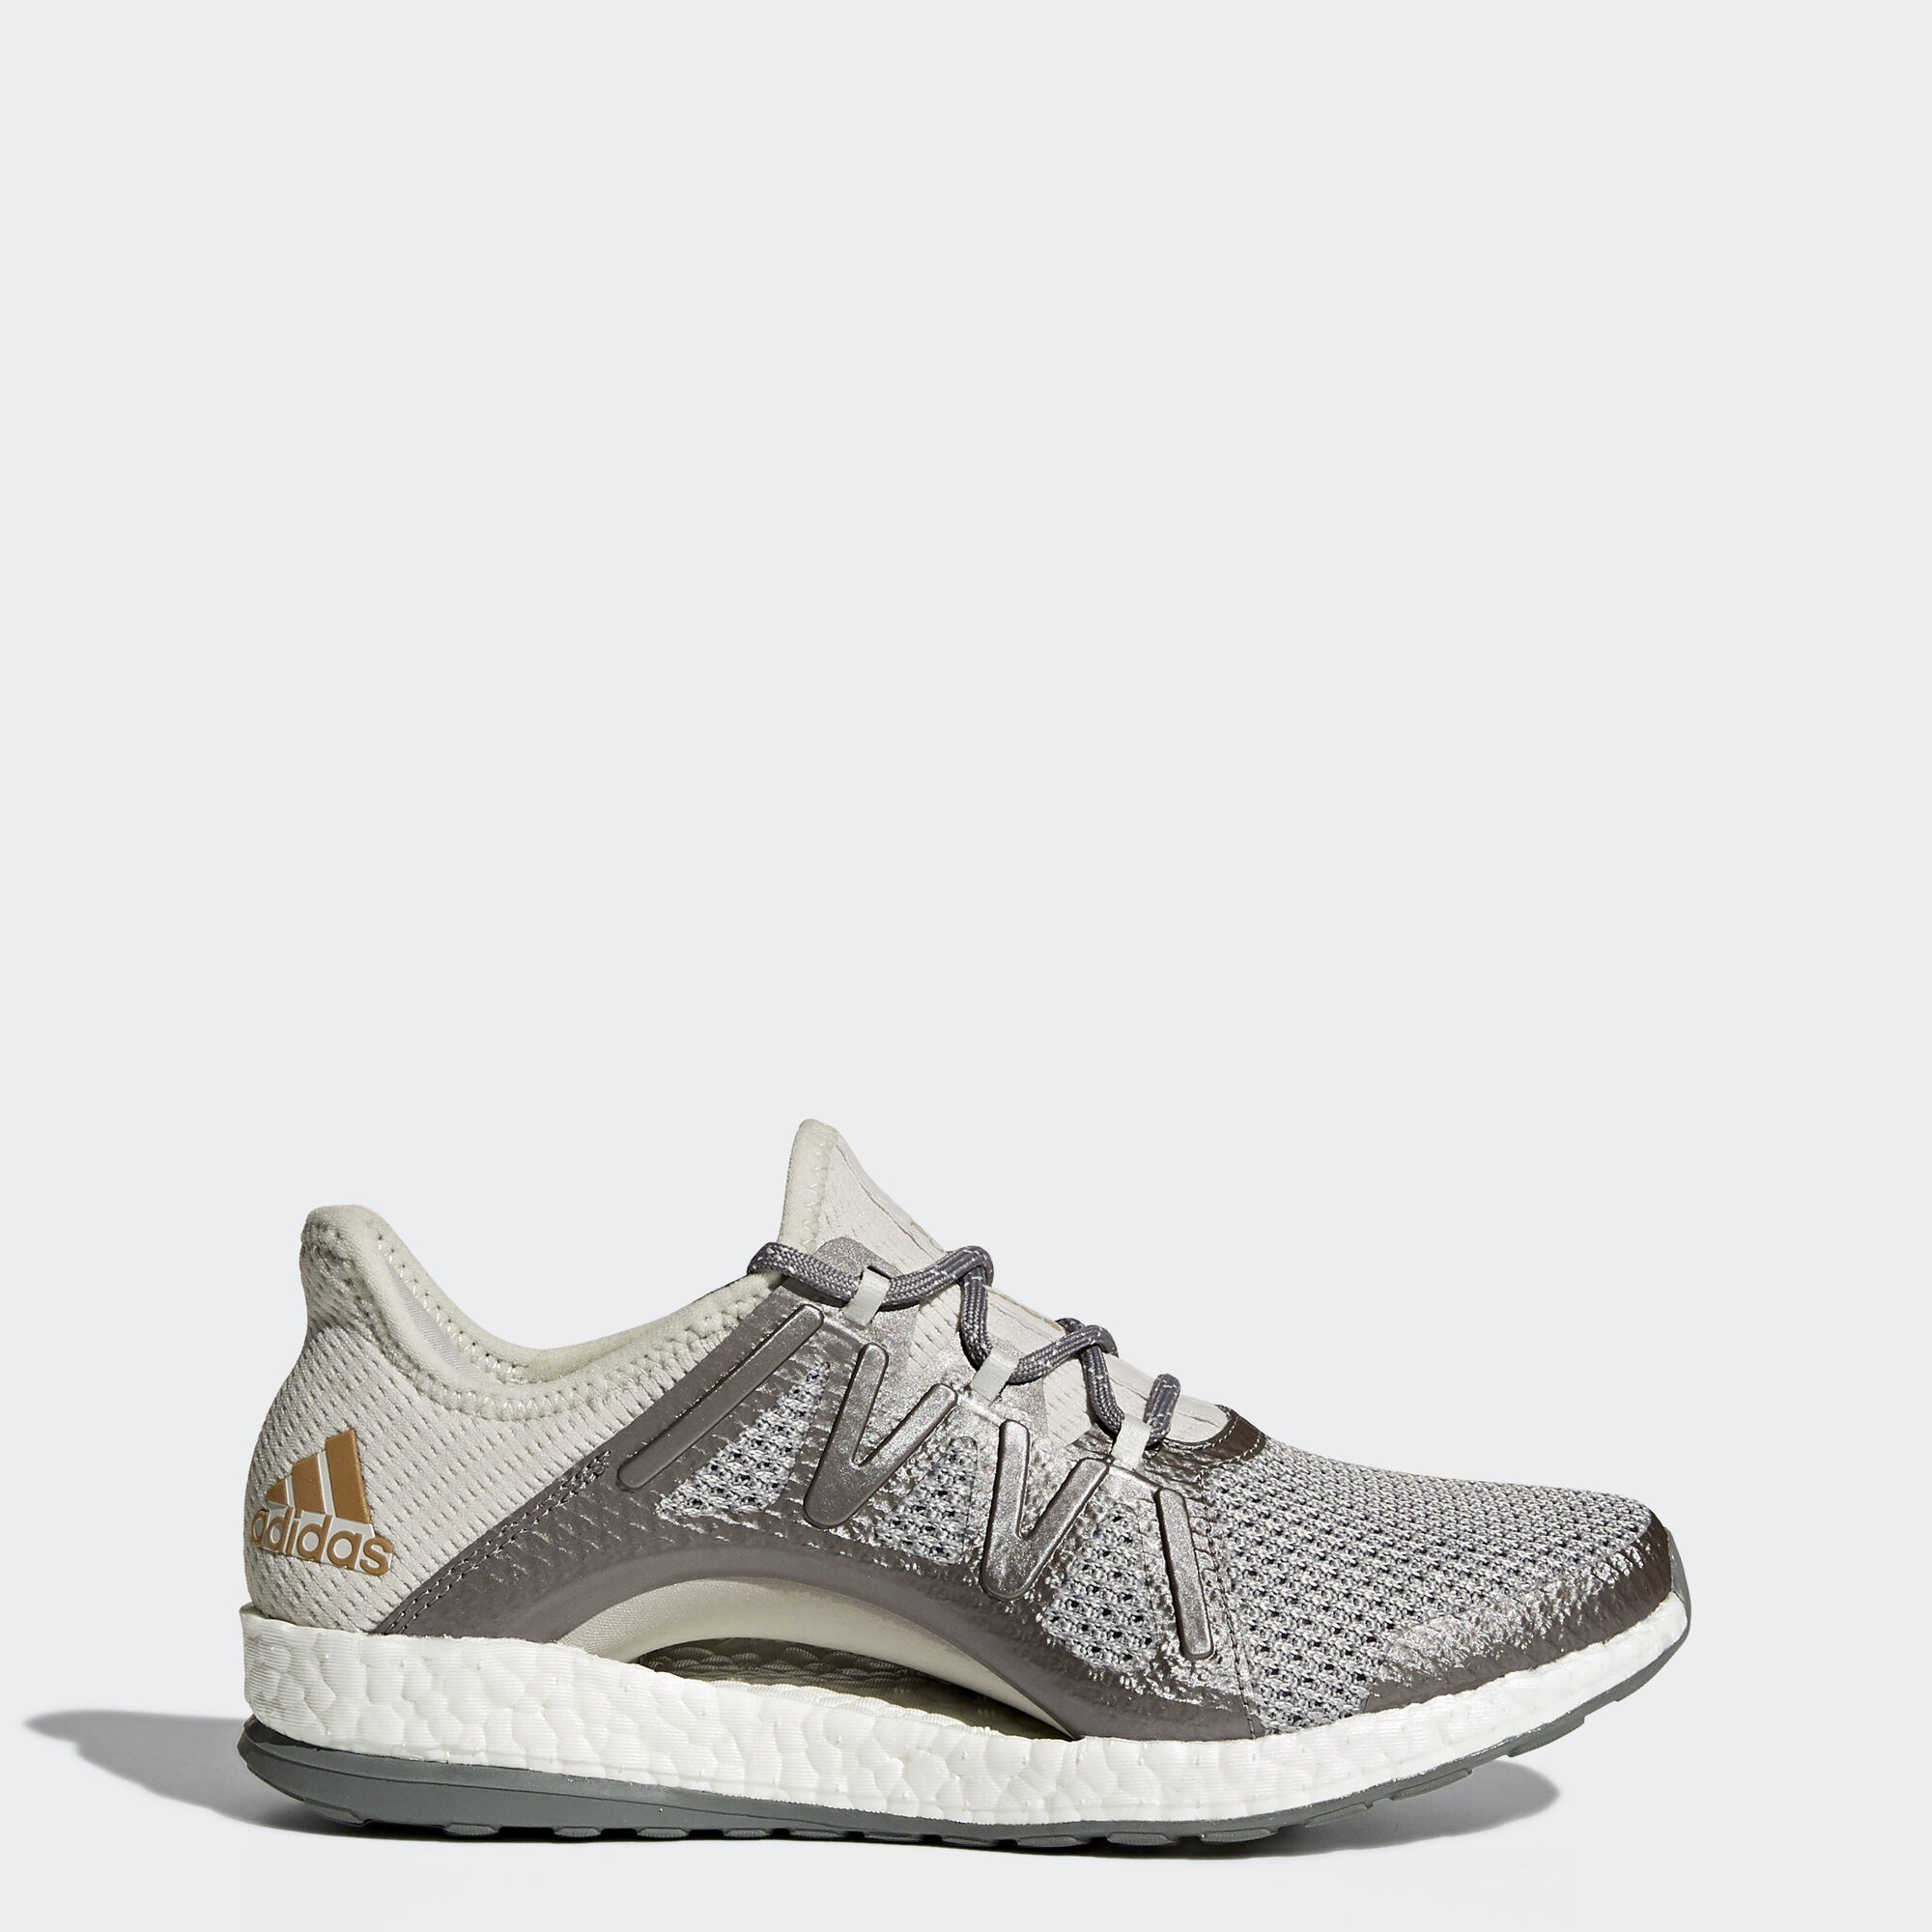 3f08e2b765087 ... ultra boost. adidas ultra boost 1.0 best price Buy adidas ultra boost  1.0 white